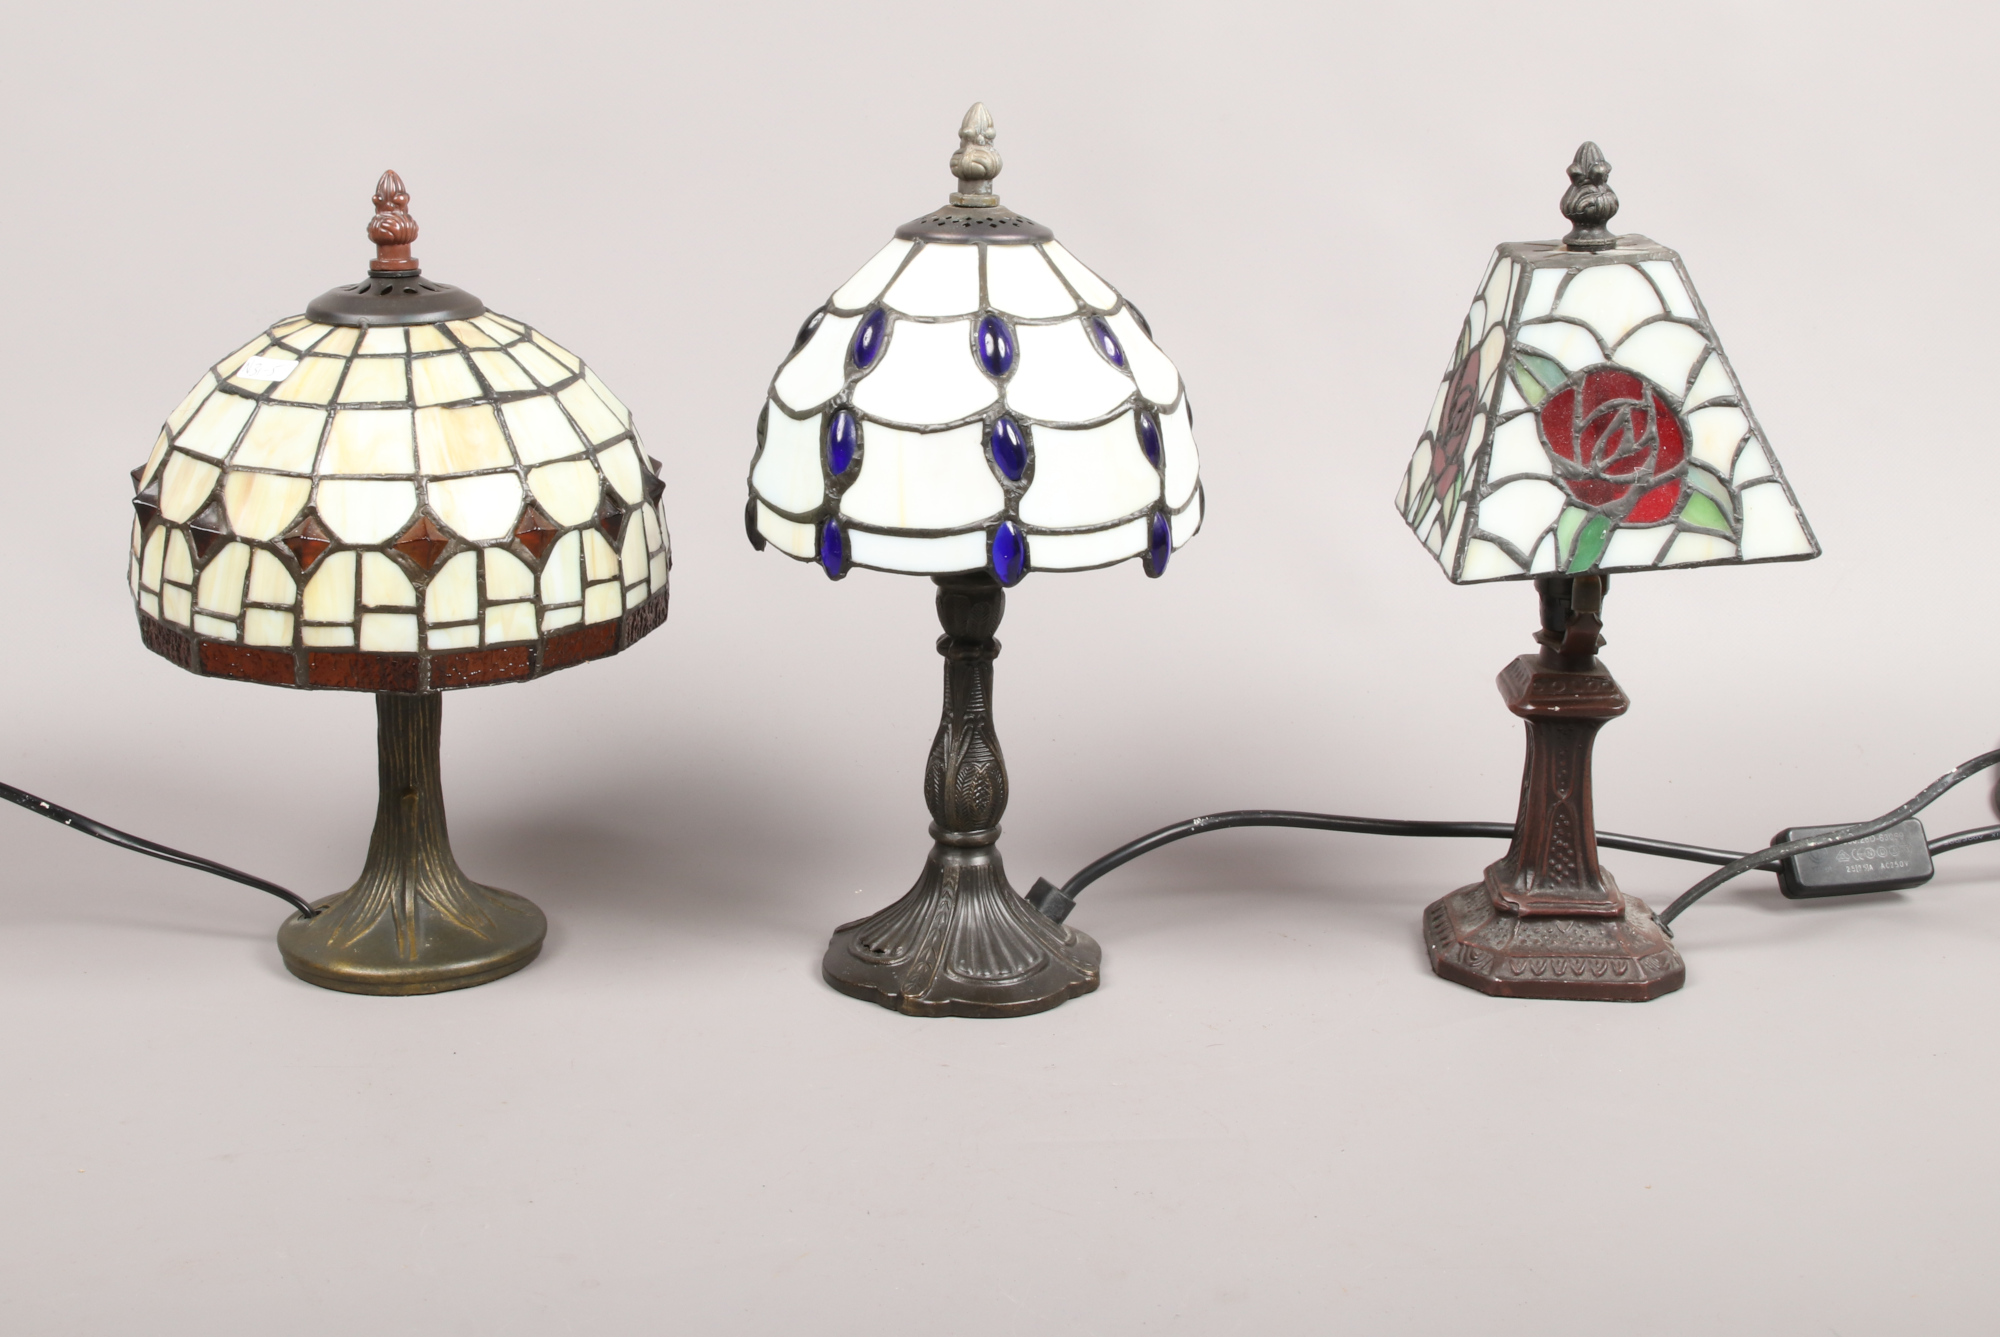 Lot 56 - Three small Tiffany style leaded and coloured glass table lamps.